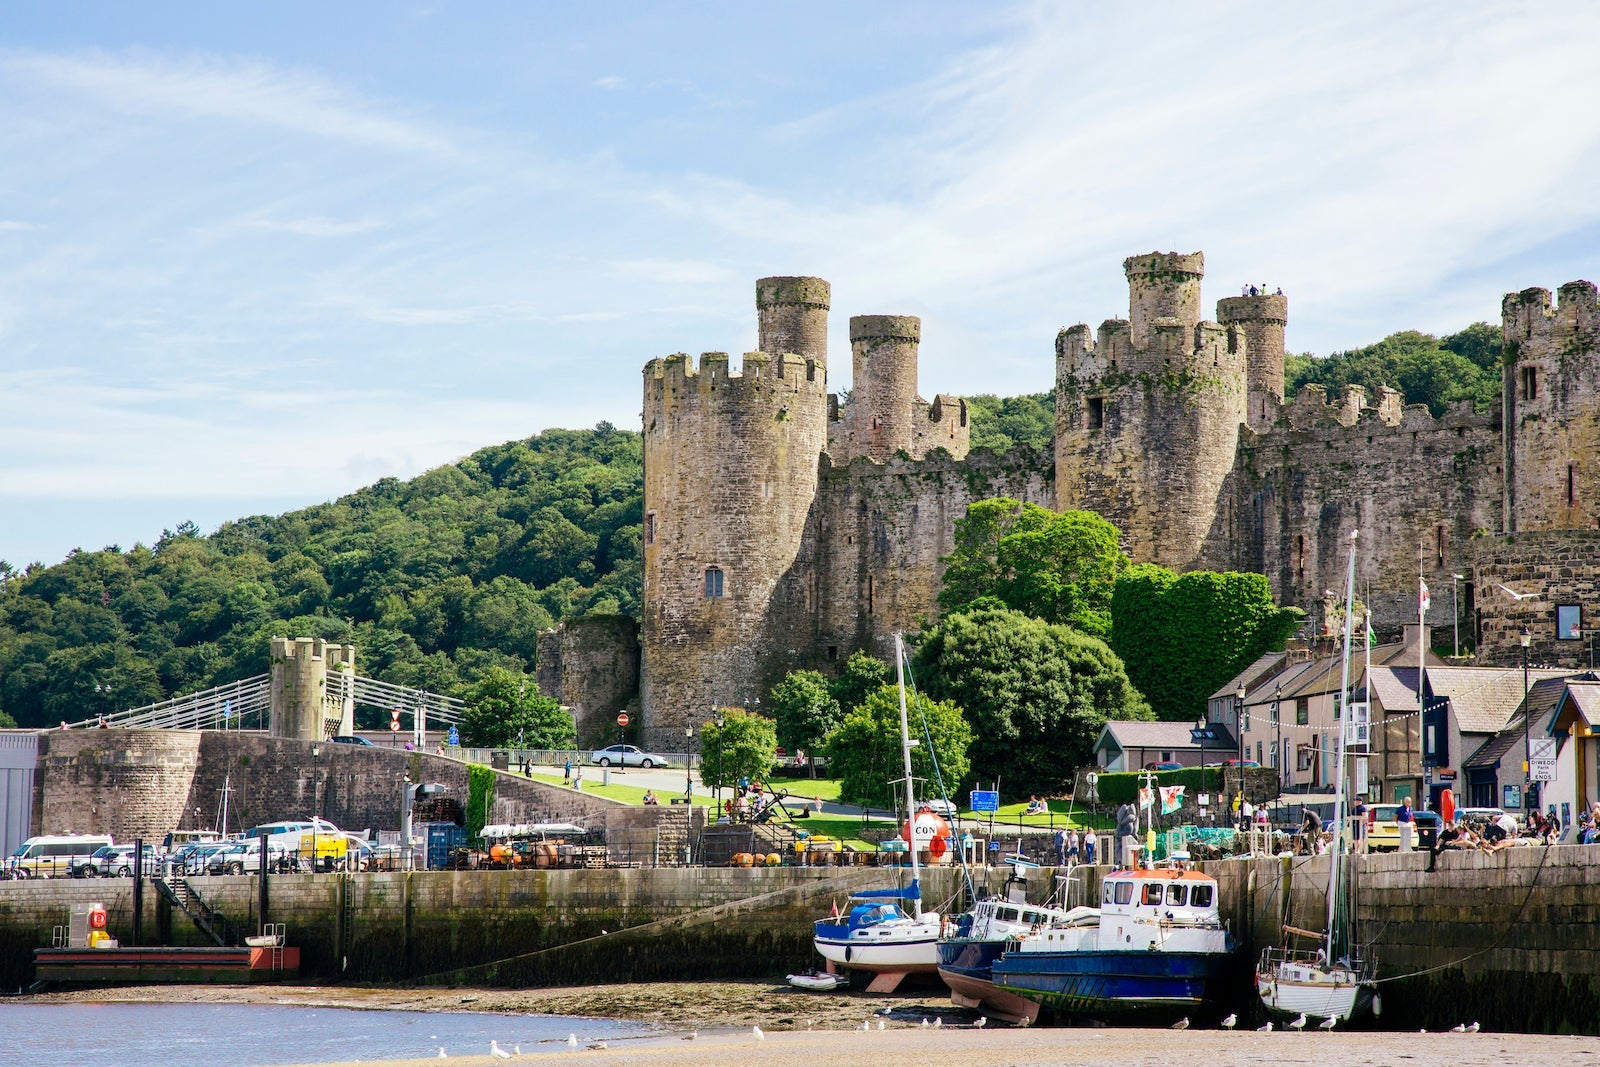 Wales considering adding tourist tax as critics warn it could hurt local tourism - The Points Guy UK